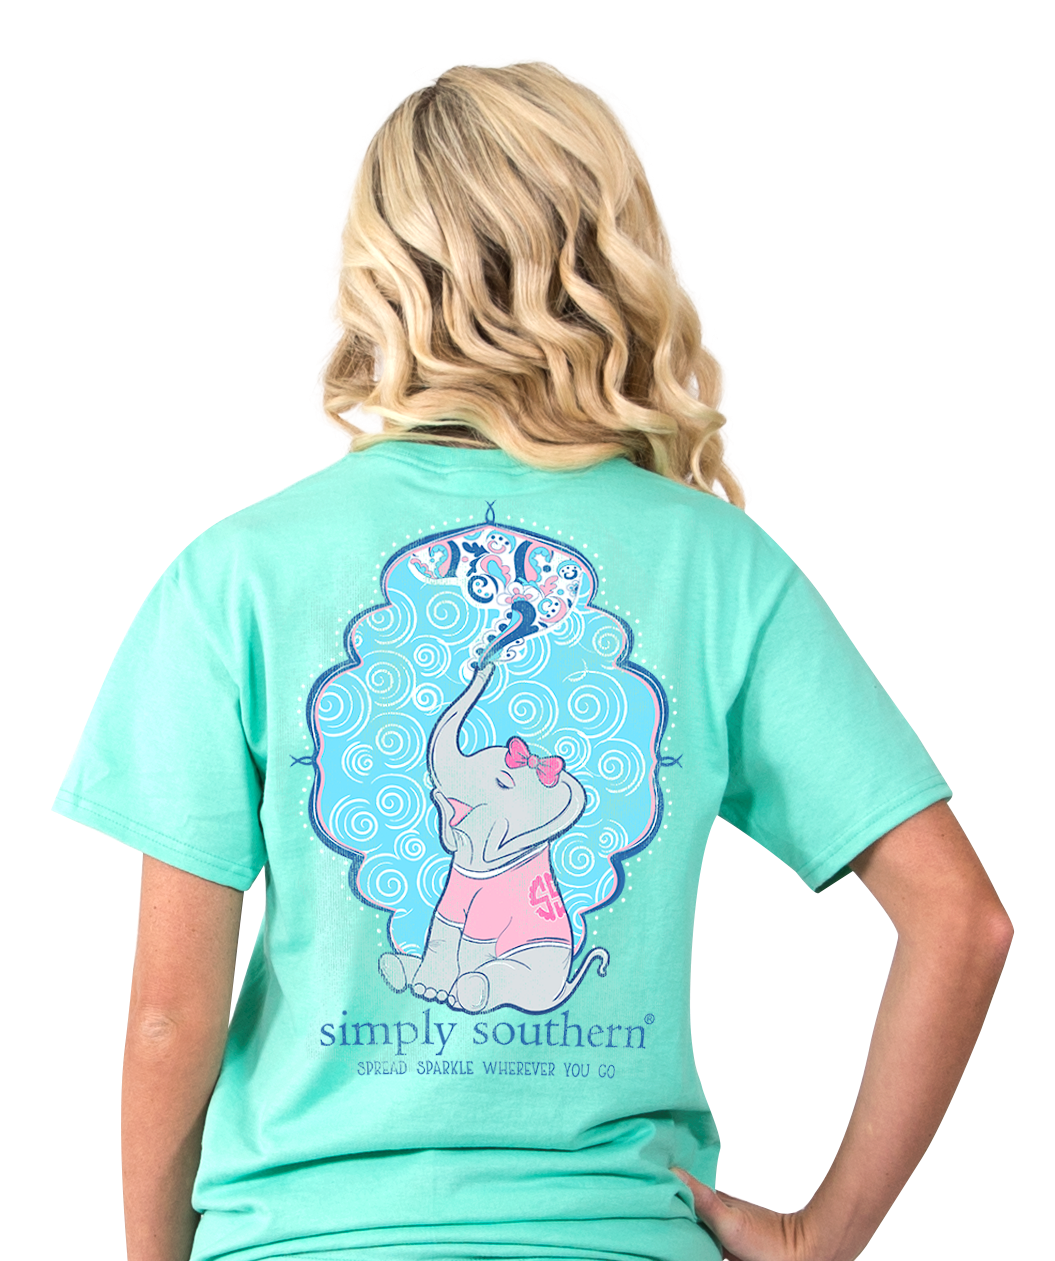 Simply Southern Preppy Spread T Shirt Blooming Boutique